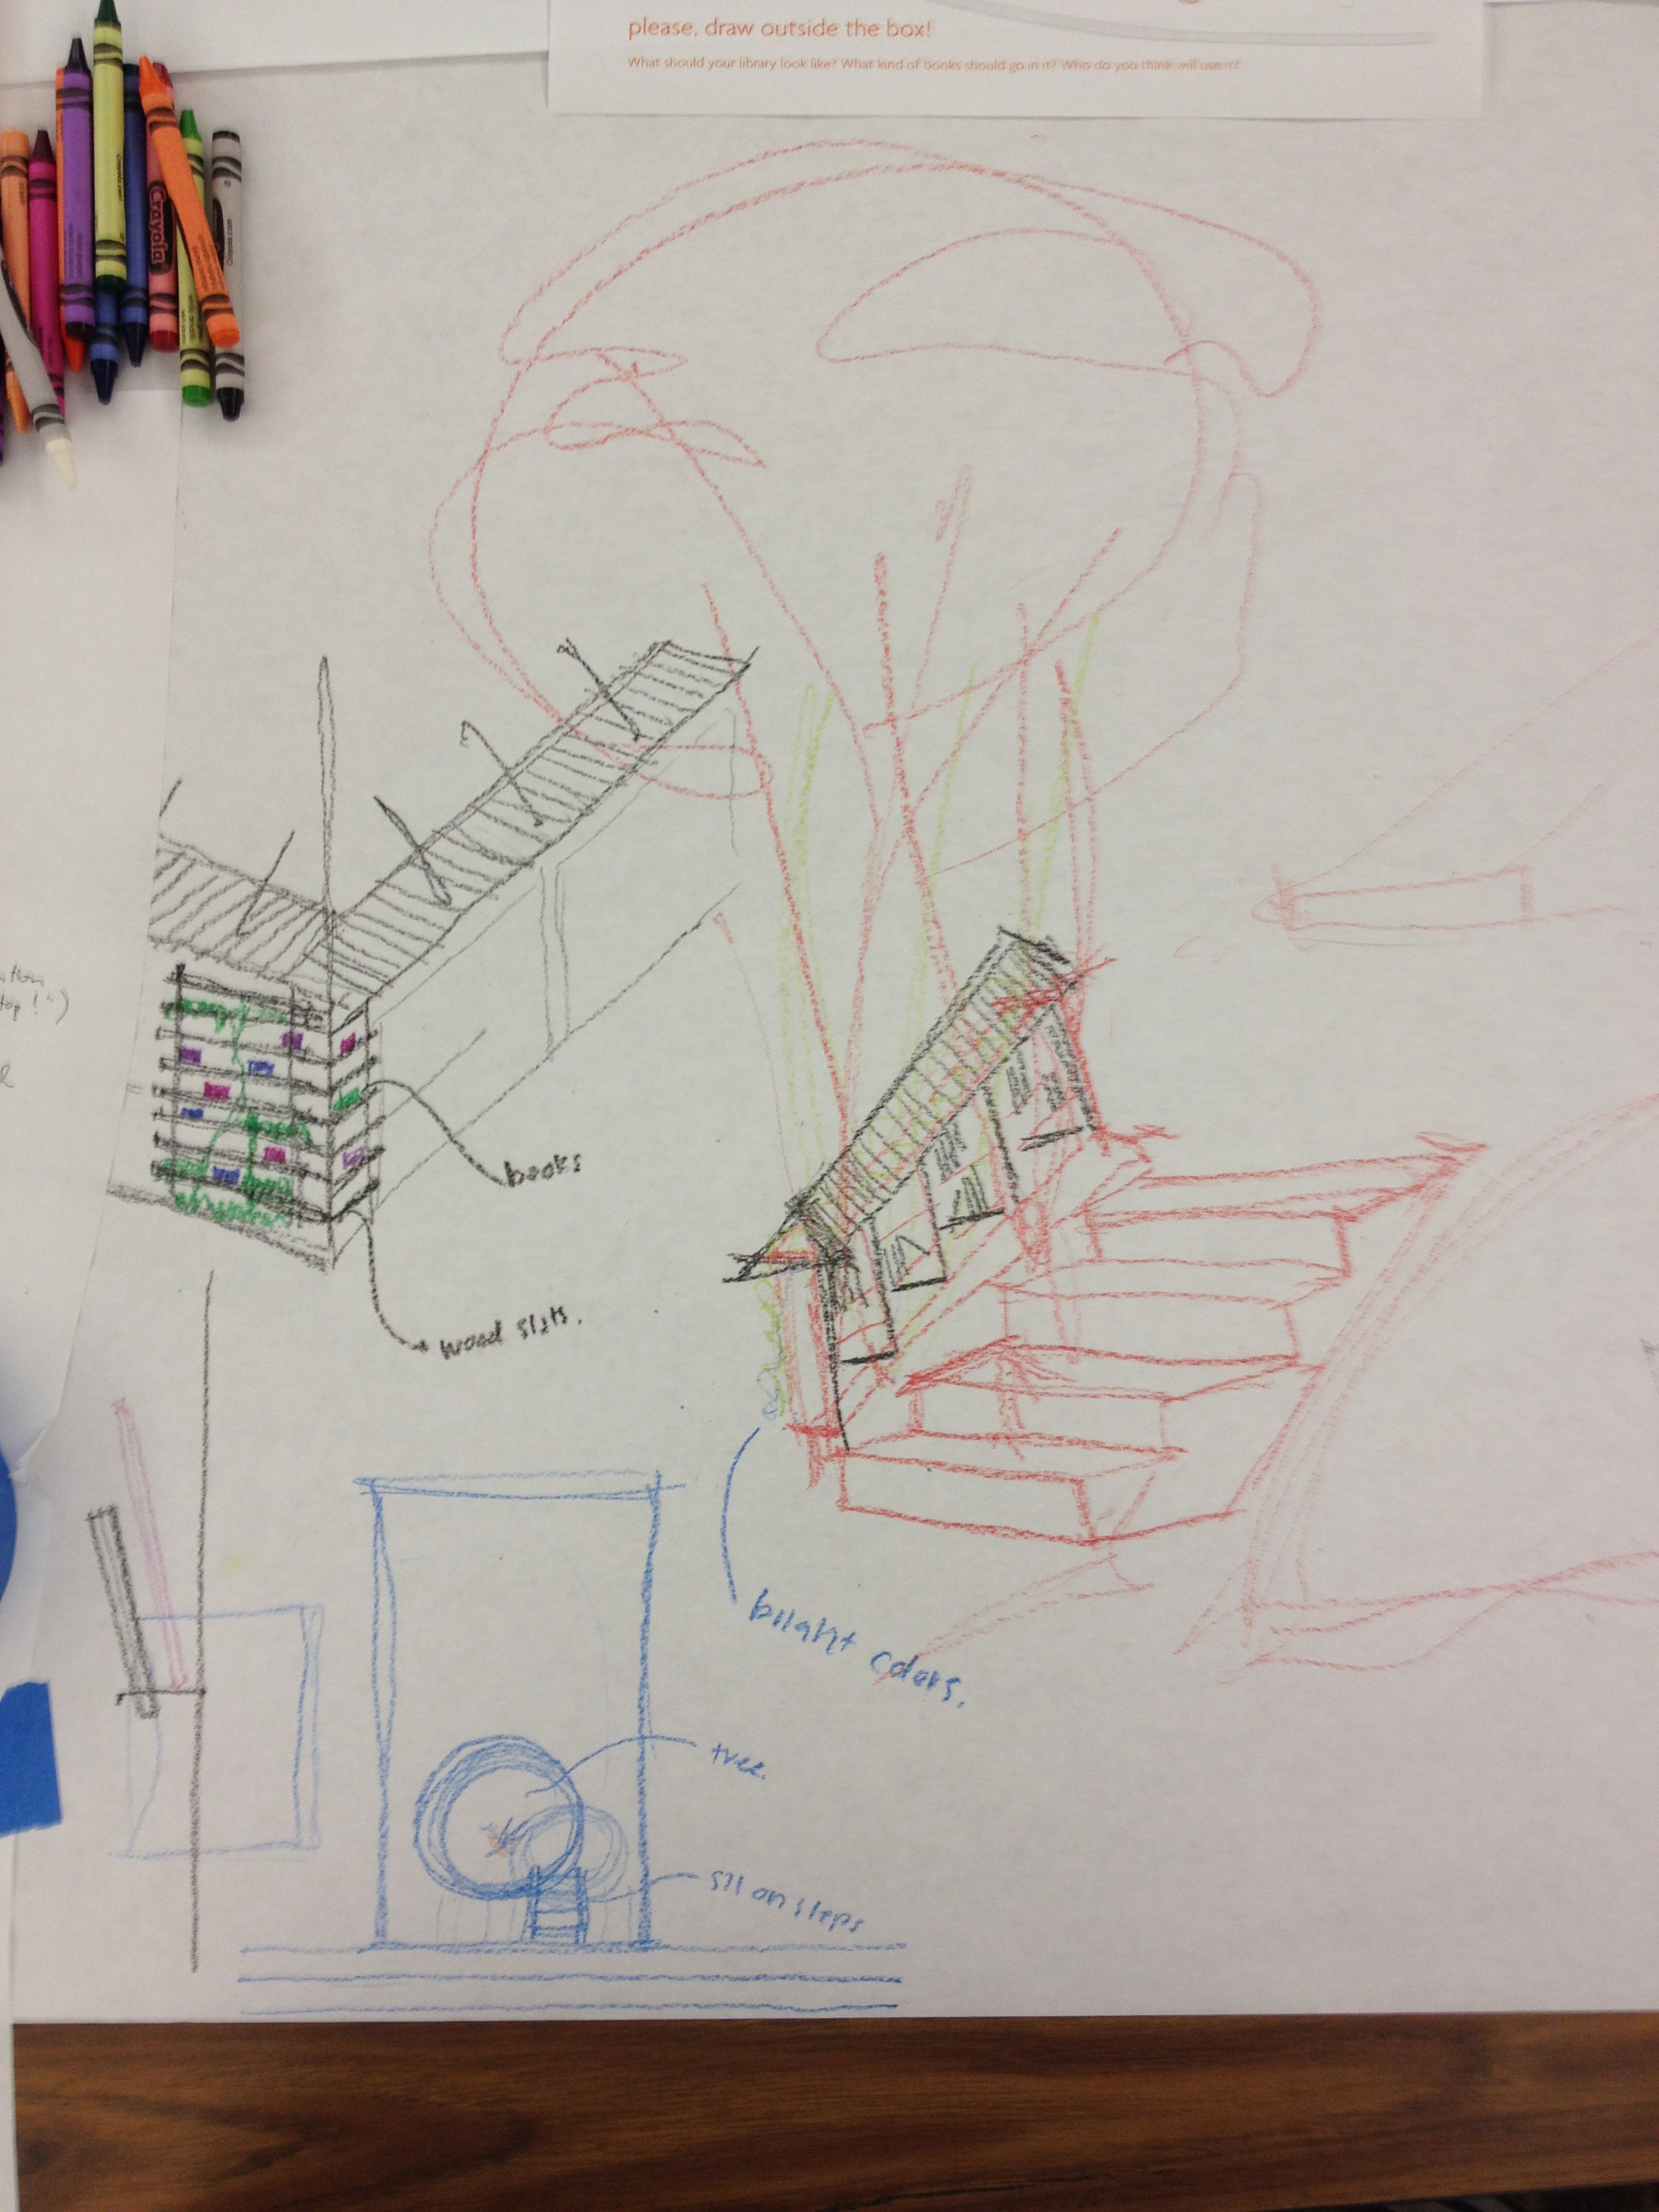 Some quick sketches from the community meeting looking at site, context, and conceptual ideas.